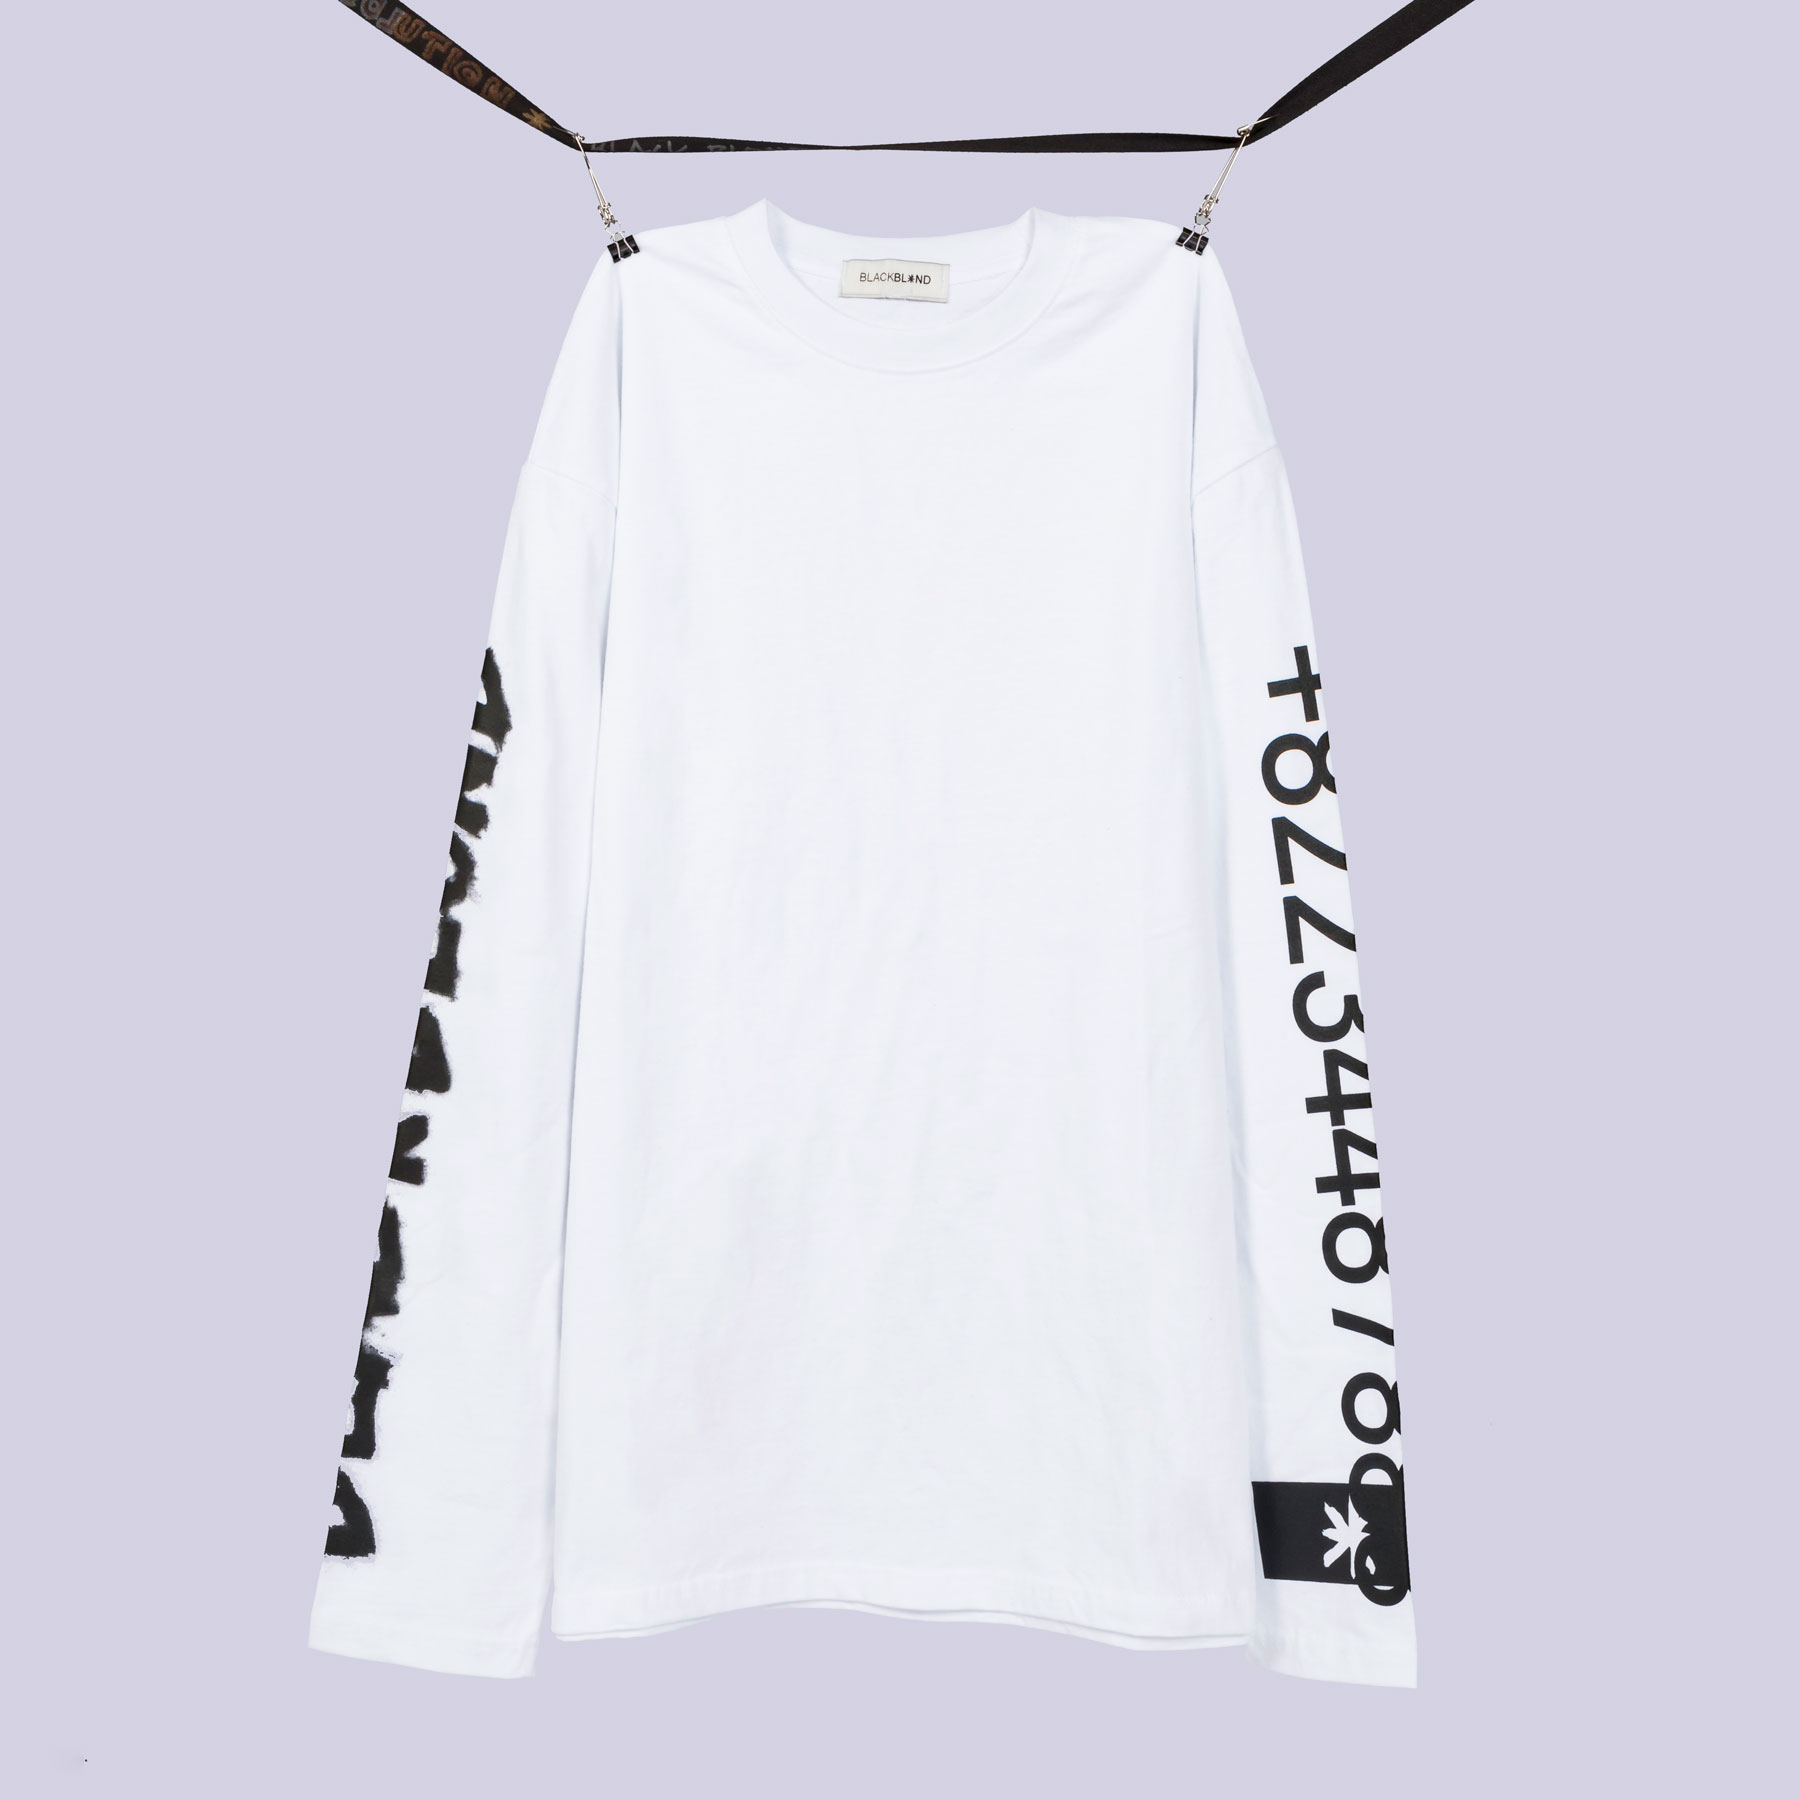 BBD Graffiti Number Tee (White)